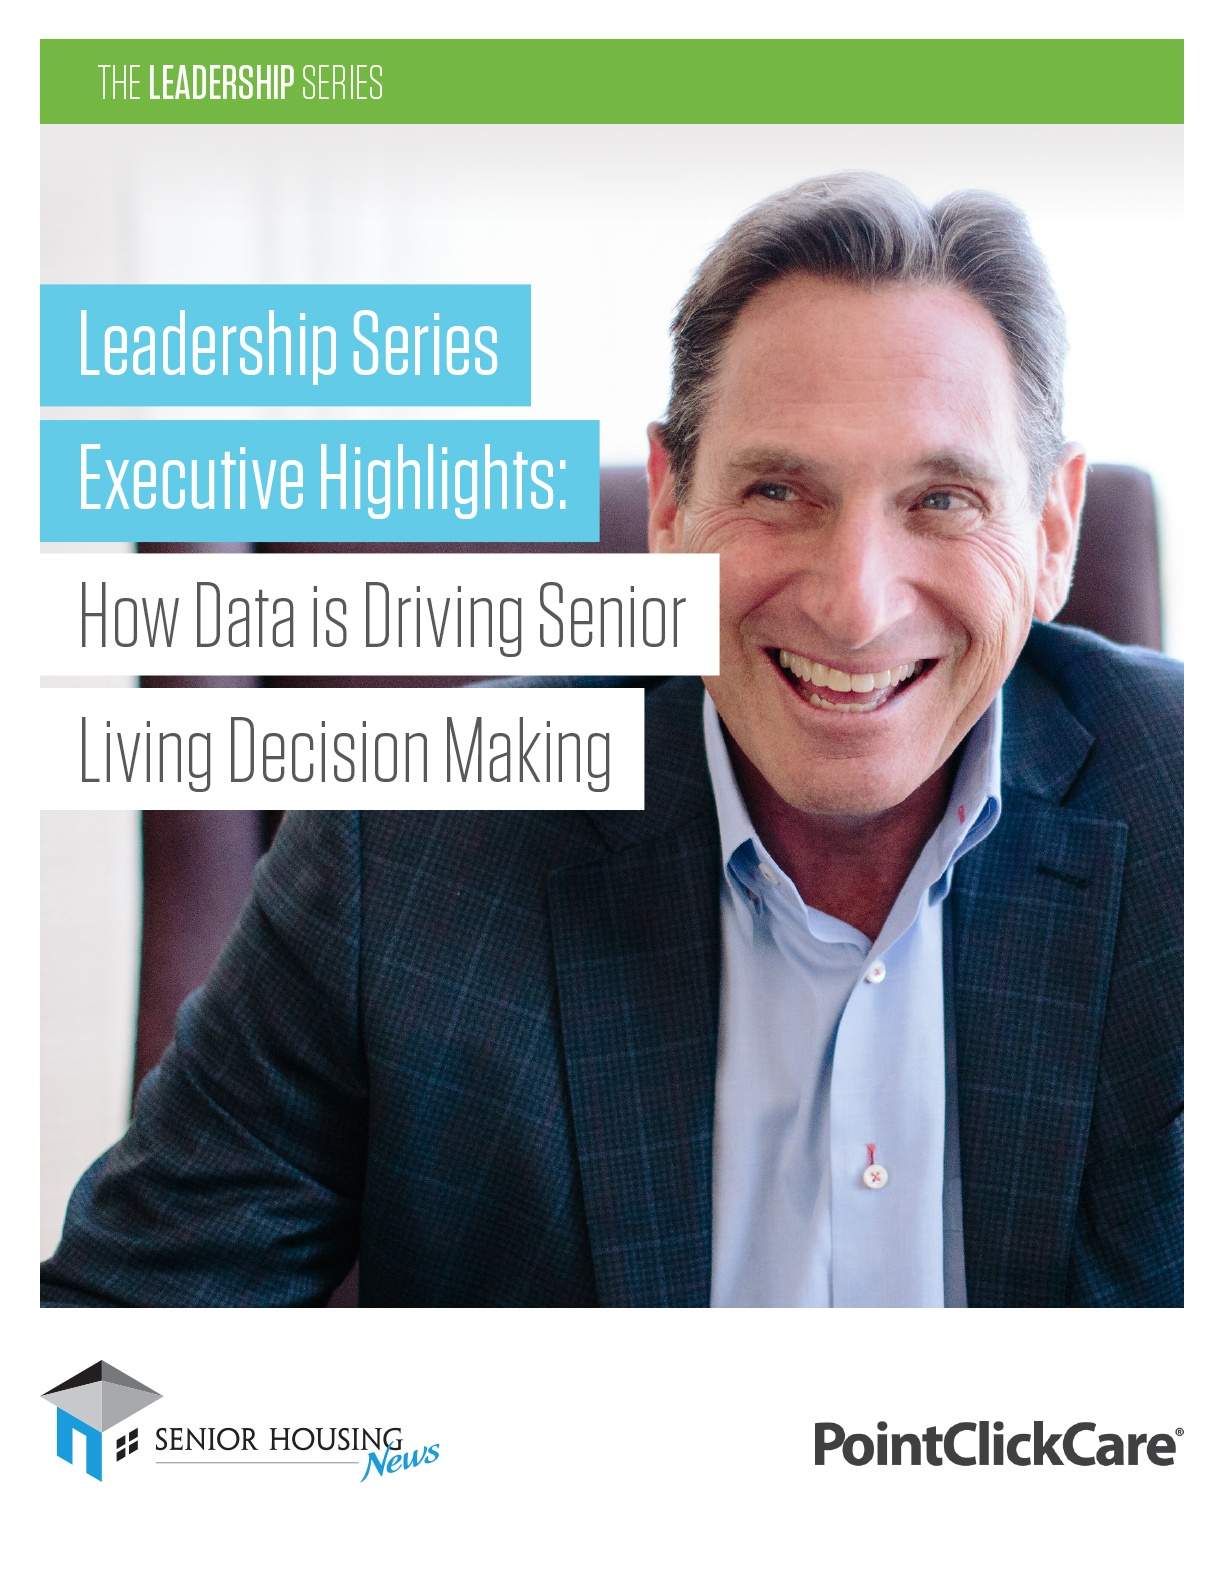 The Leadership Series Executive Highlights: How Data is Driving Senior Living Decision Making